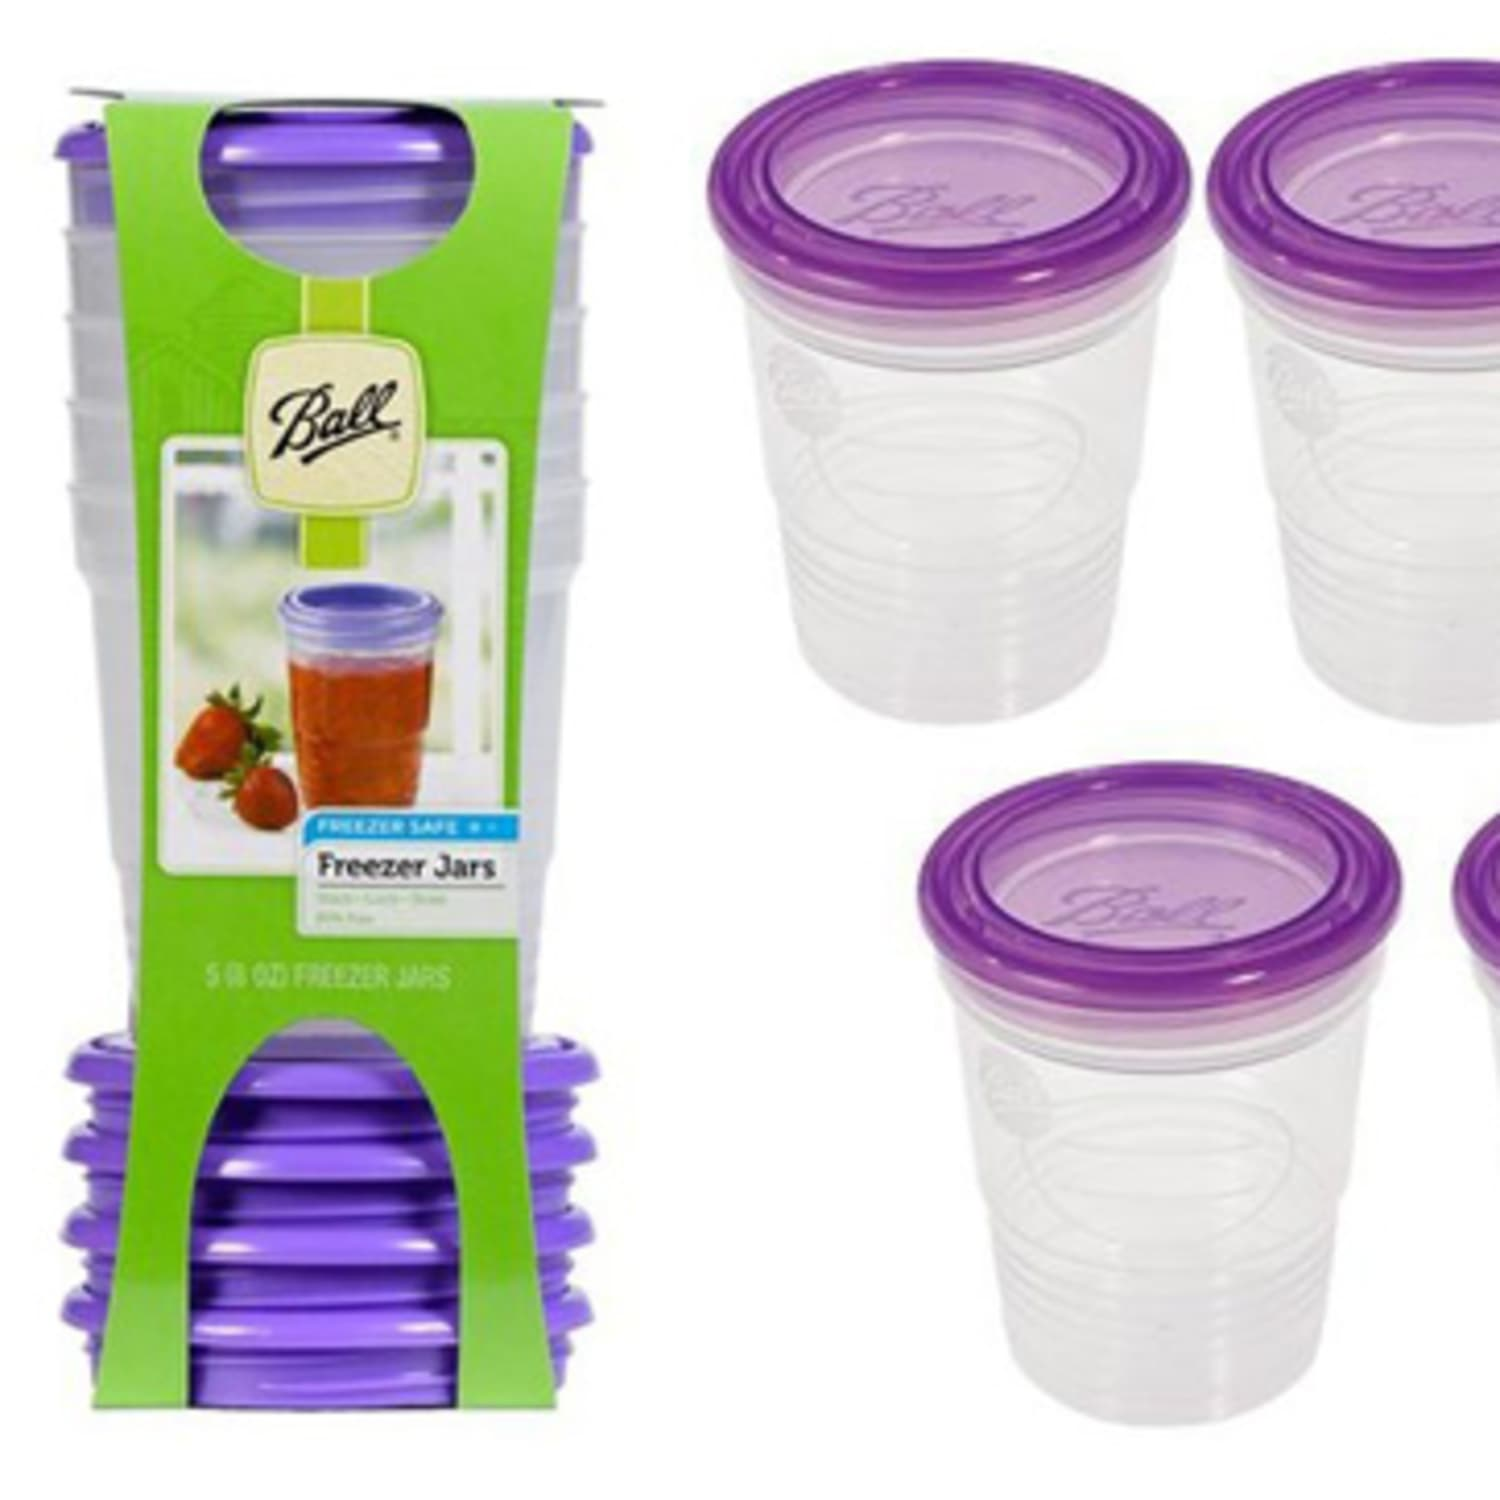 Easy Freezer Storage: Stackable Plastic Jars from Ball | Kitchn